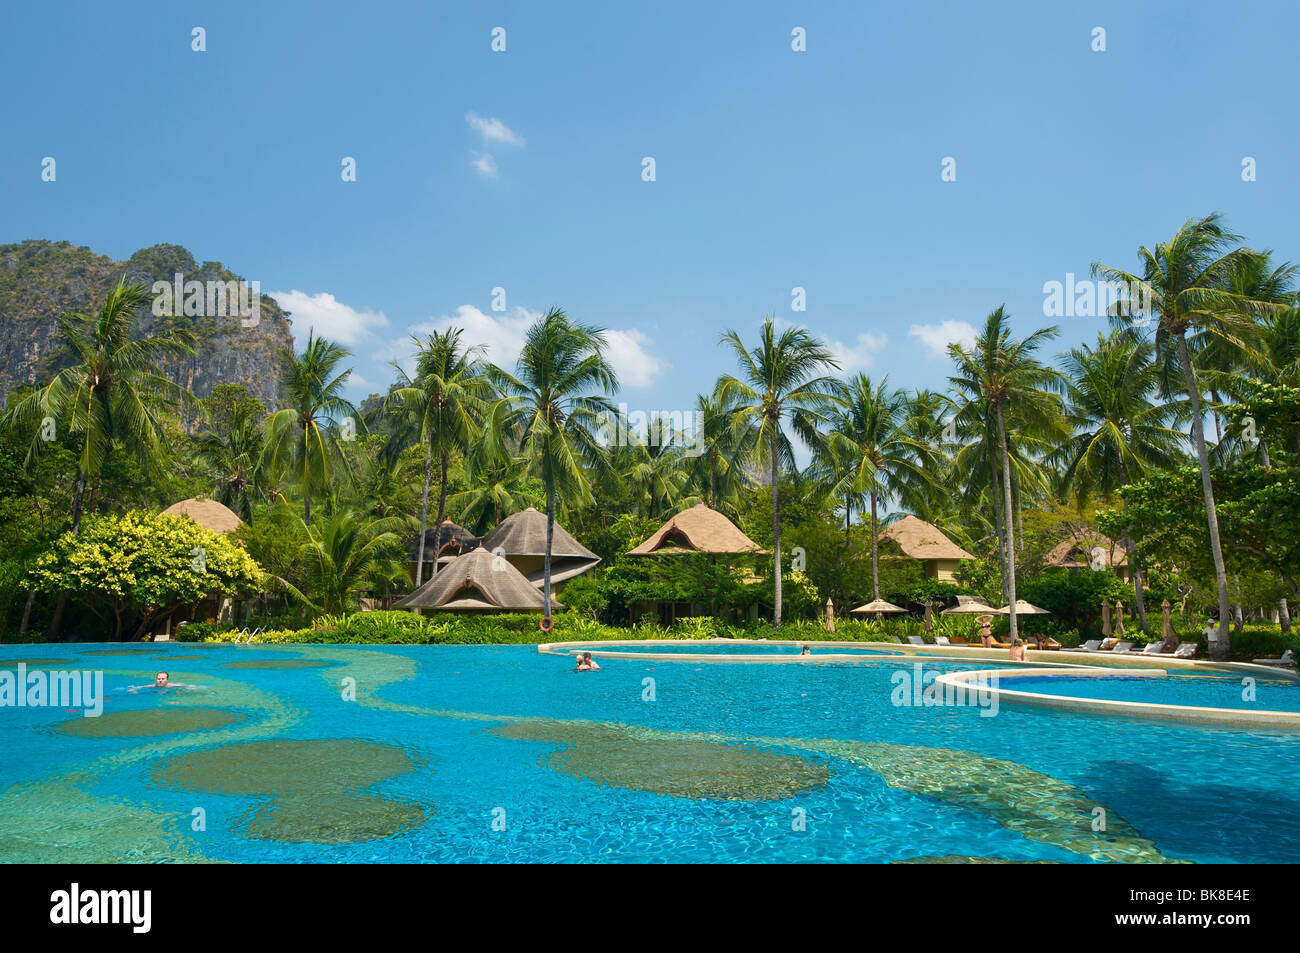 Swimming pool of the Rayavadee Resort, Krabi, Thailand, Asia Stock Photo